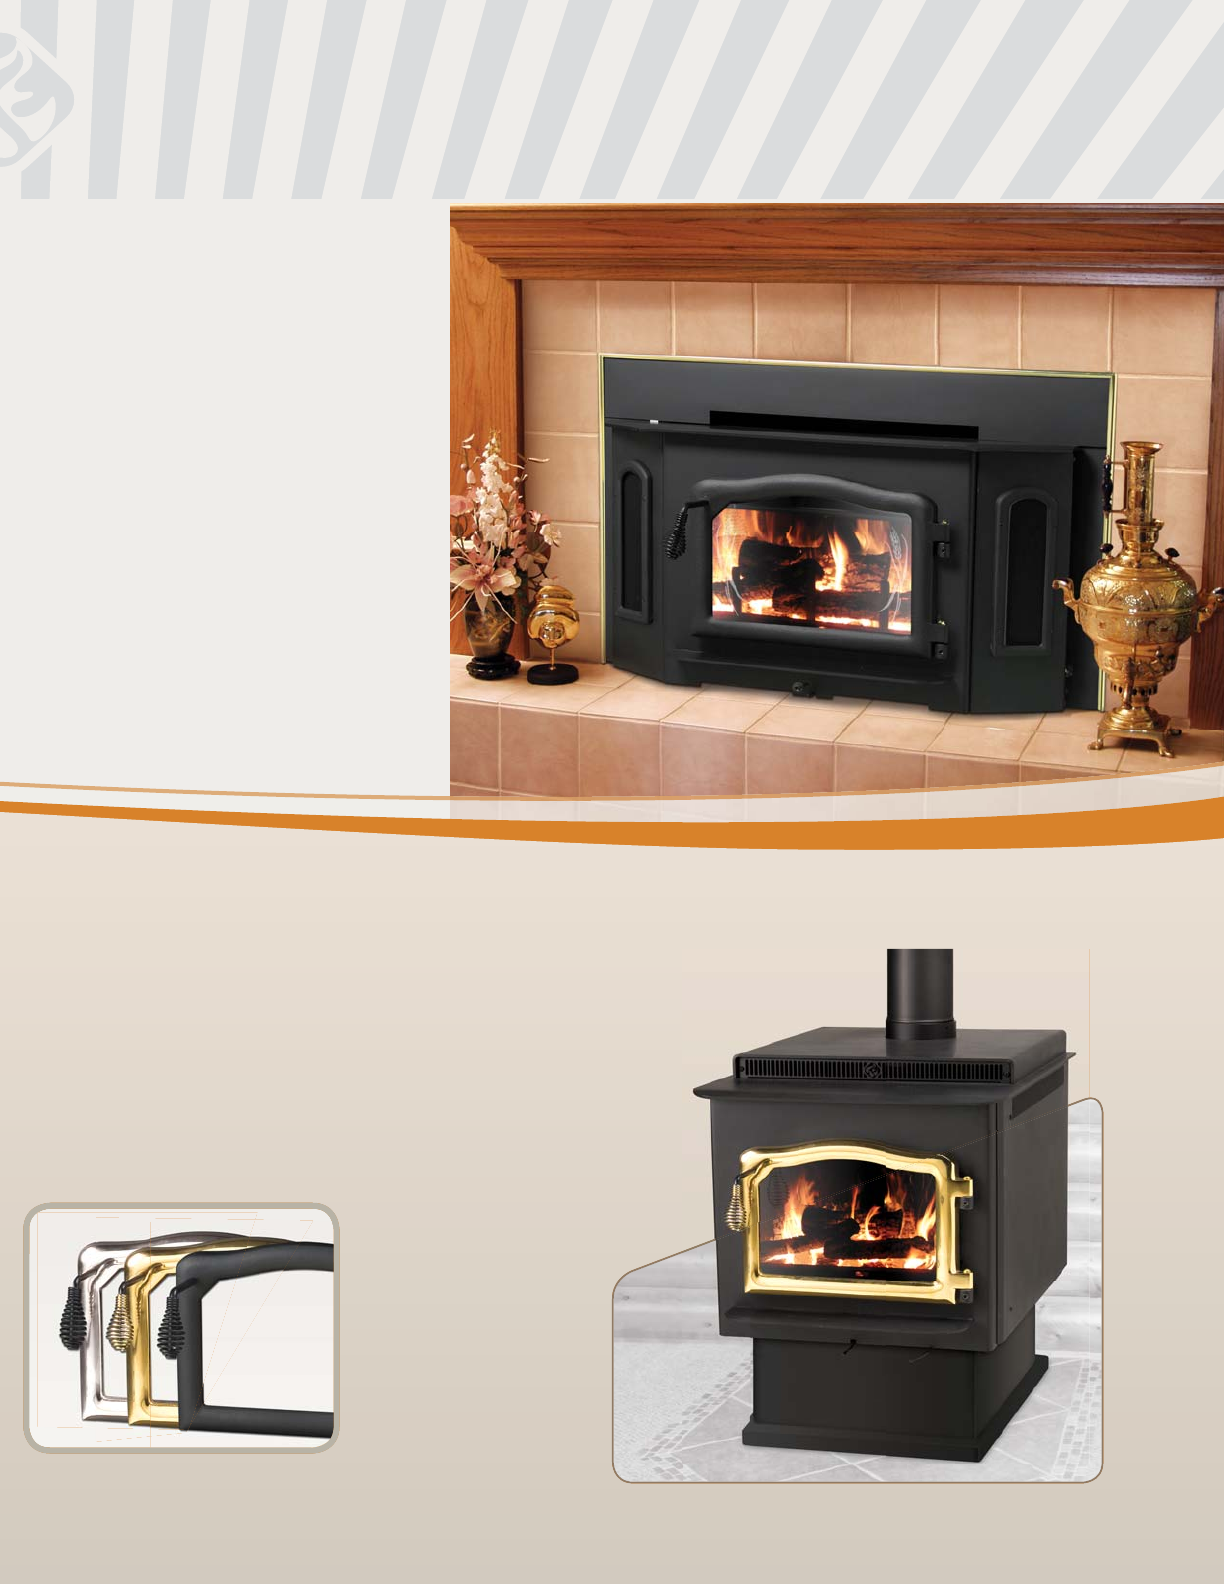 Country flame wood stove insert - Ovation Series Non Catalytic Wood Burning Appliances Ovation Bay Flame Insert Country